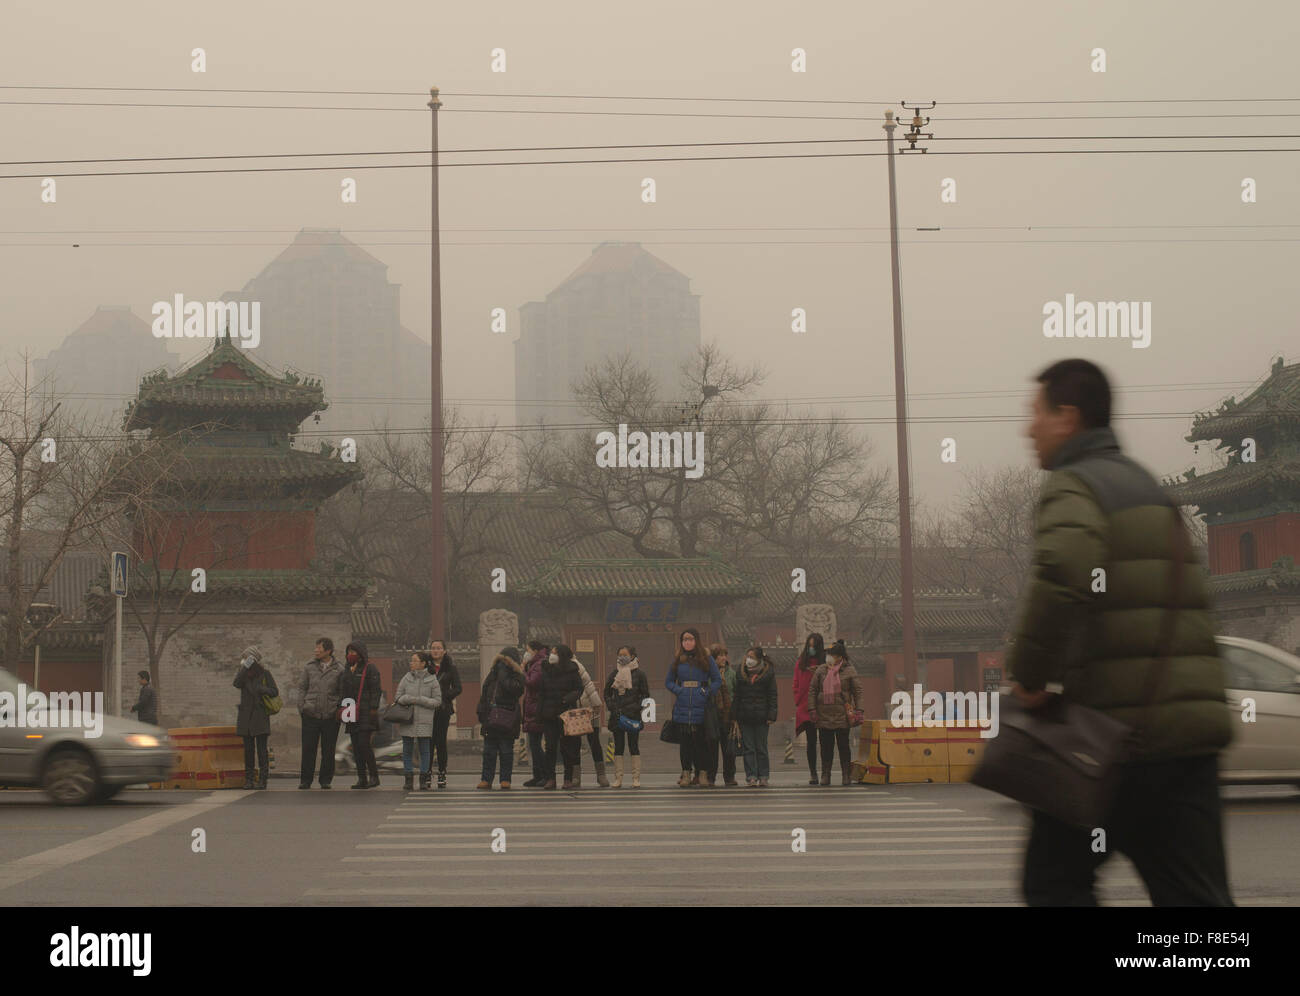 People with face masks wait at a pedestrian crossing on their way to work, braving heavy air pollution in the Chinese Stock Photo